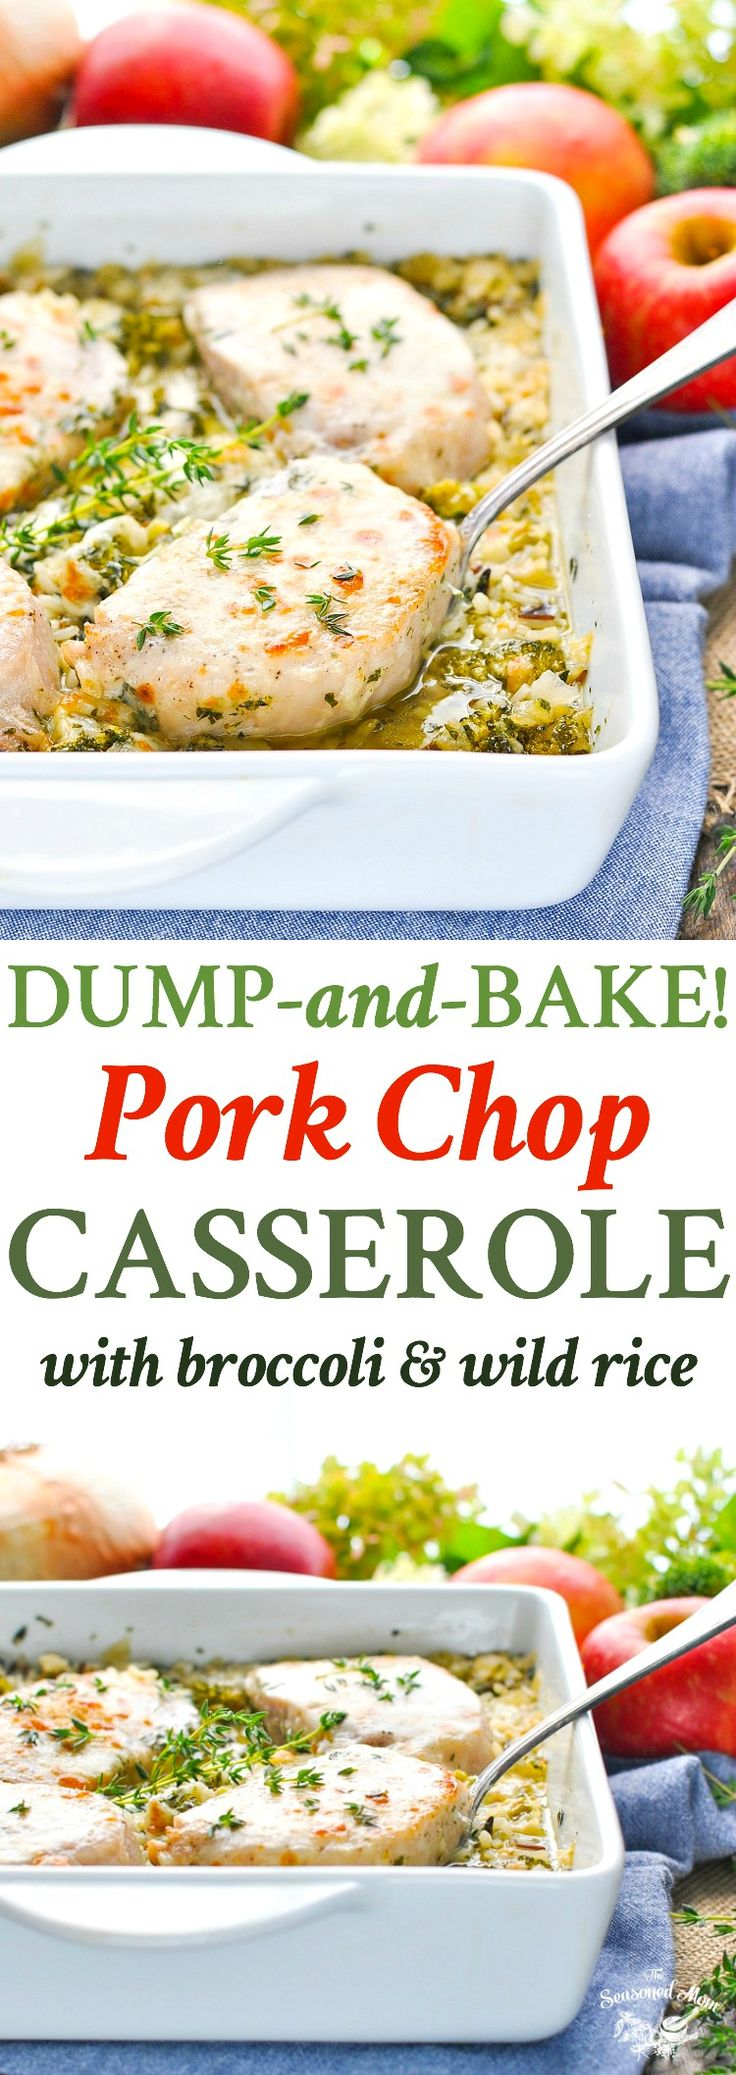 For an easy dinner recipe that cooks entirely in one dish, try this Dump-and-Bake Pork Chop Casserole with Broccoli and Wild Rice! Pork Chop Recipes | Pork Chops | One Pot Meals